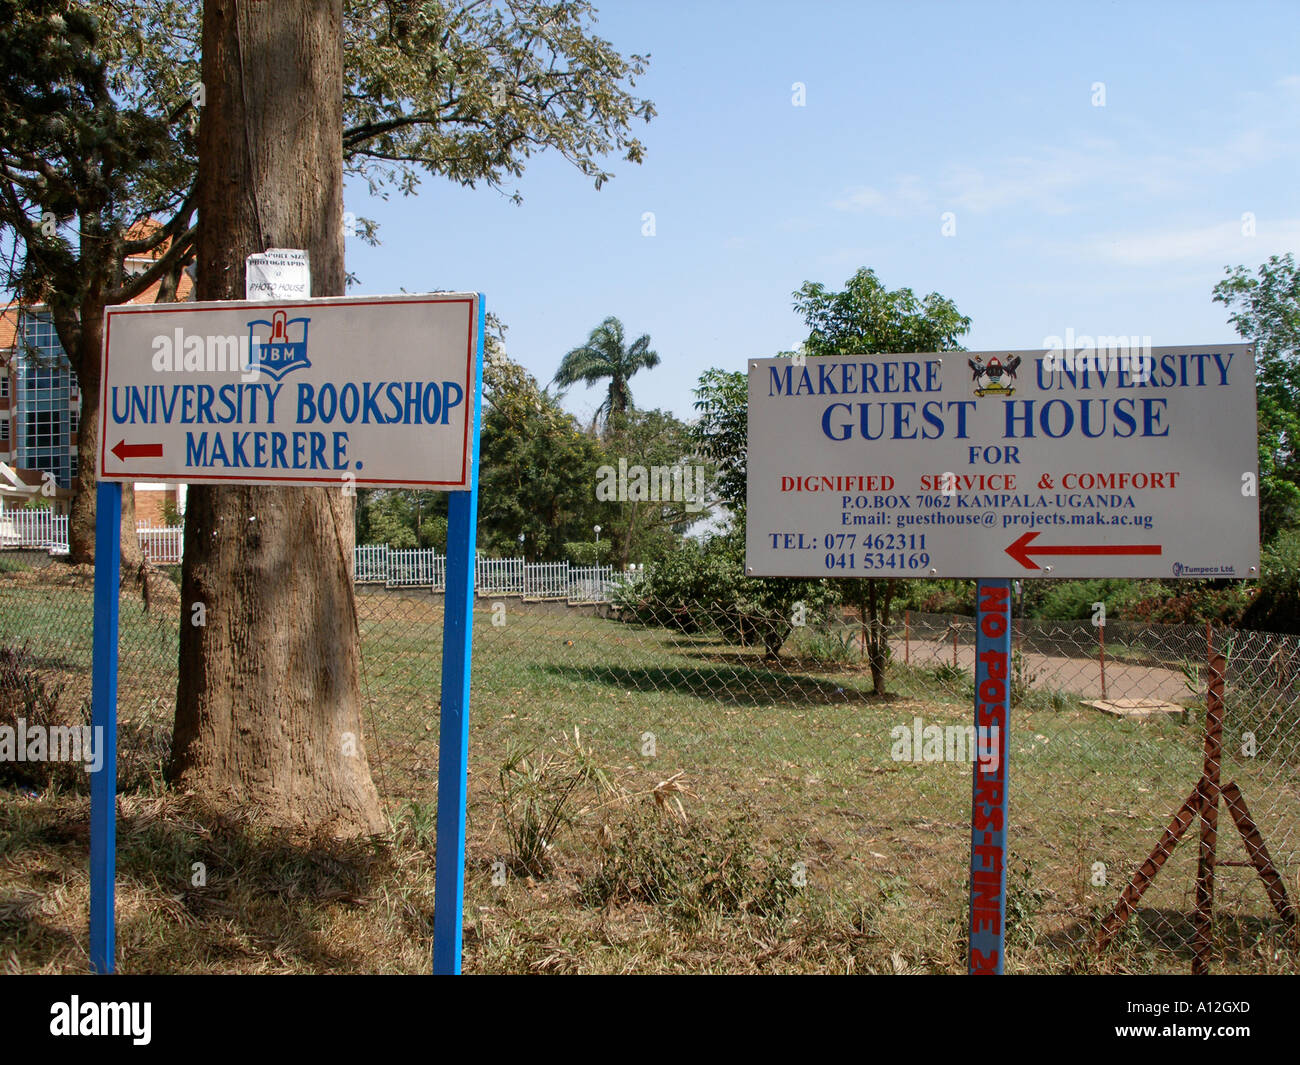 Signboards for the university bookshop and the guest house on Makerere University Campus - Stock Image